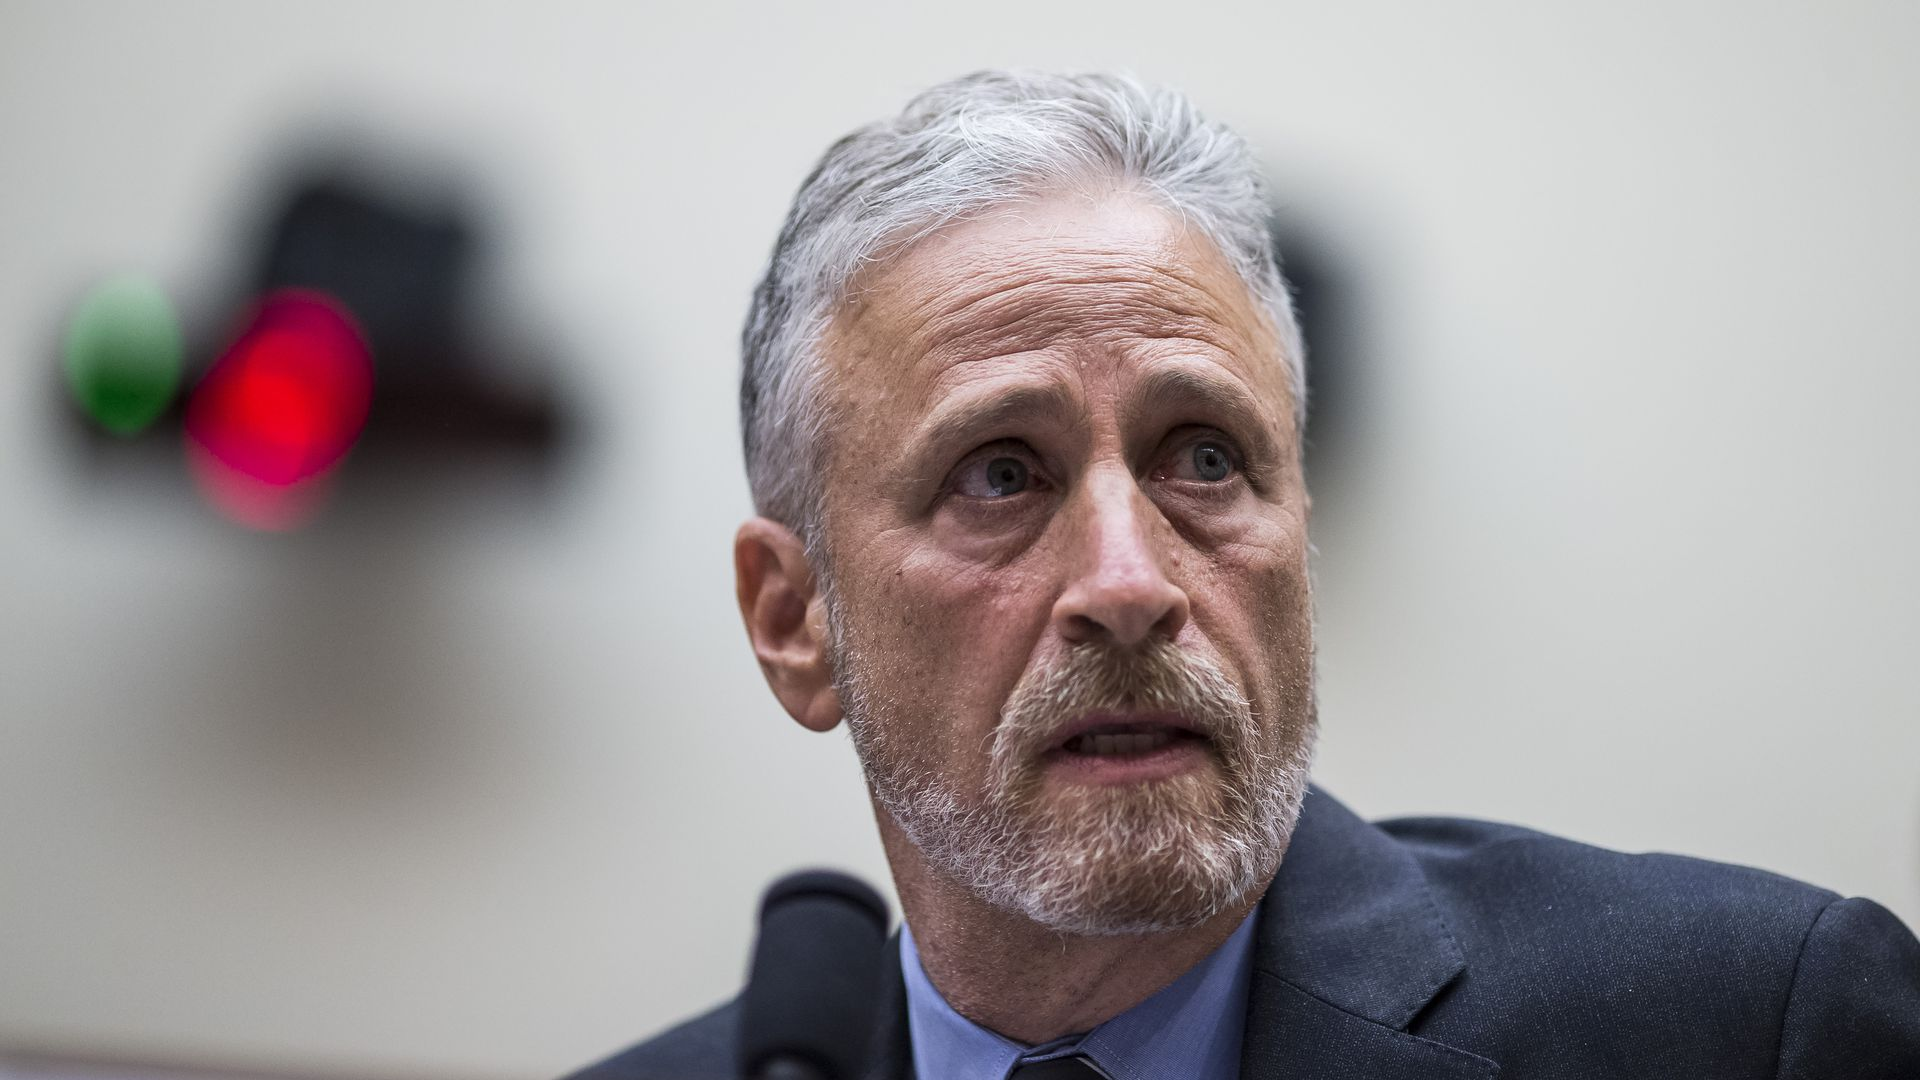 Former Daily Show Host Jon Stewart testifies during a House Judiciary Committee hearing on reauthorization of the September 11th Victim Compensation Fund on Capitol Hill on June 11.